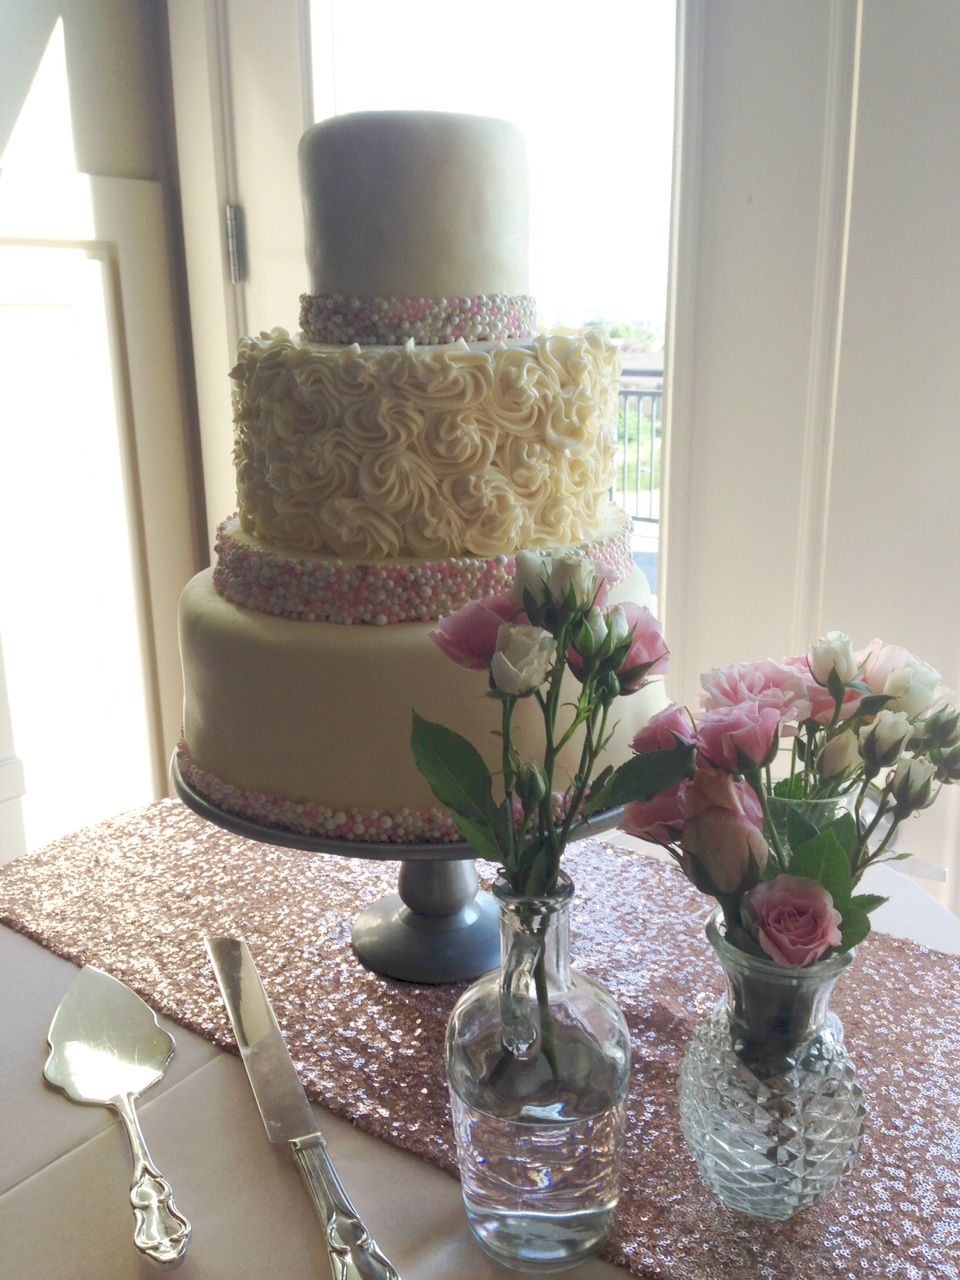 4-tier round fondant, beads, and buttercream